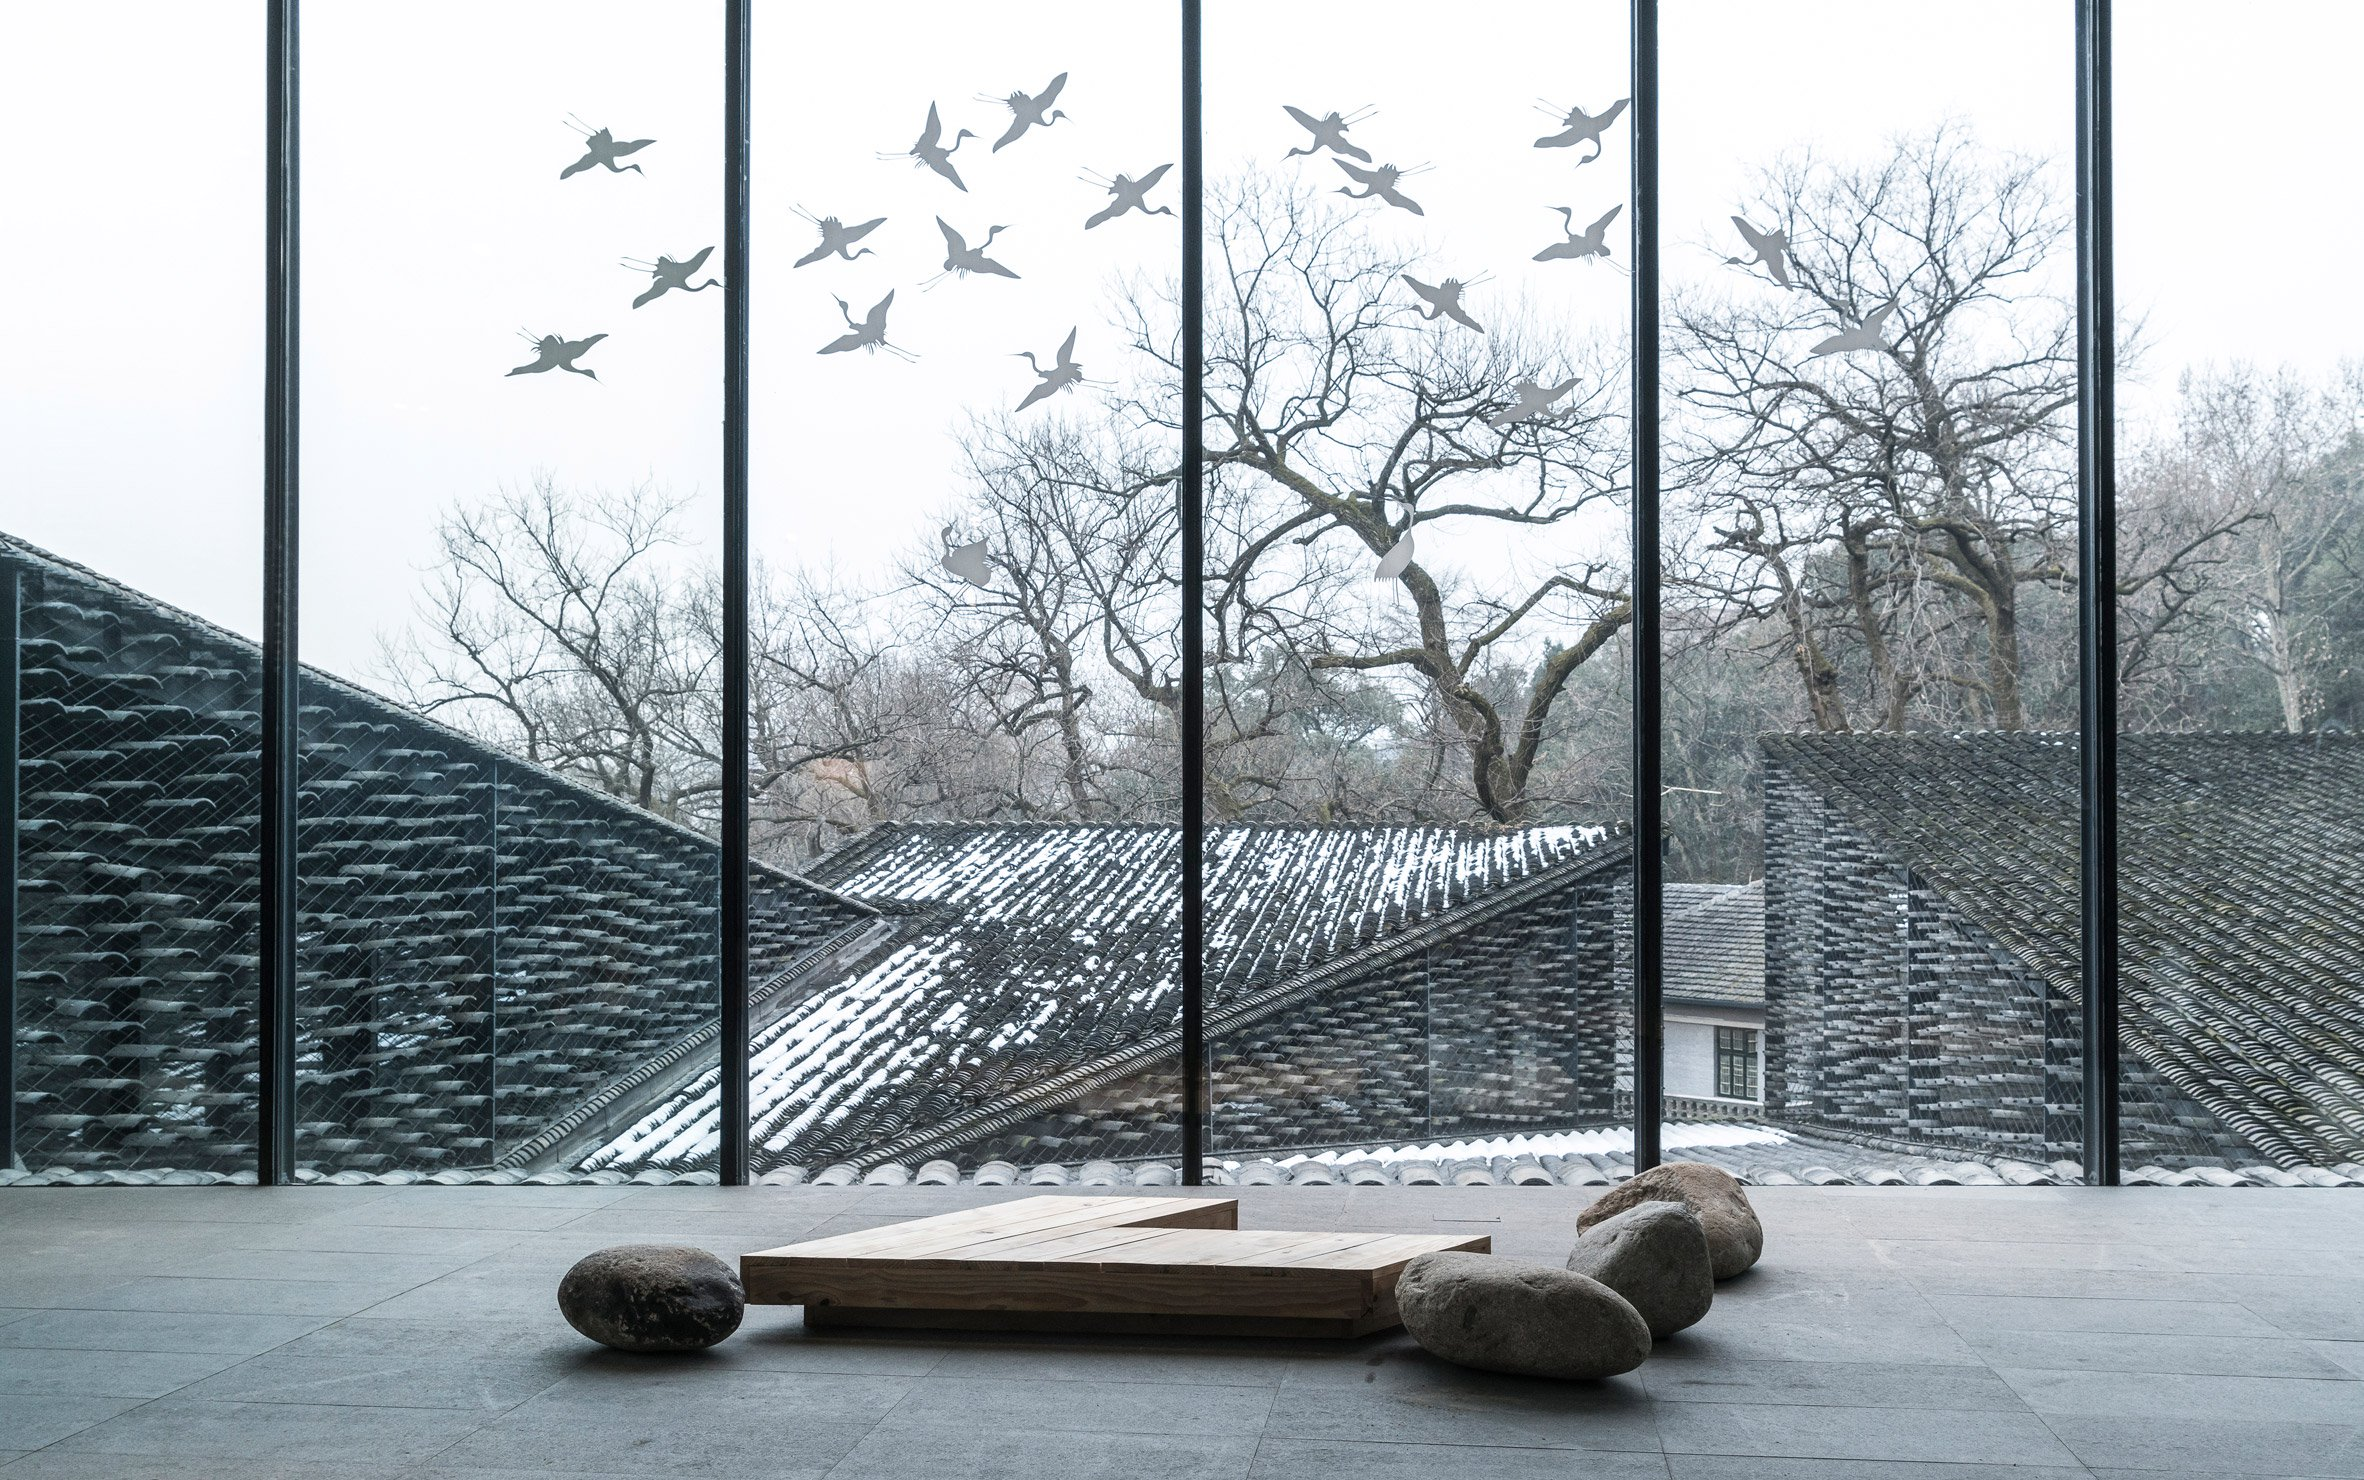 Folk Art Museum, China Academy of Arts, Hangzhou, China, by Kengo Kuma